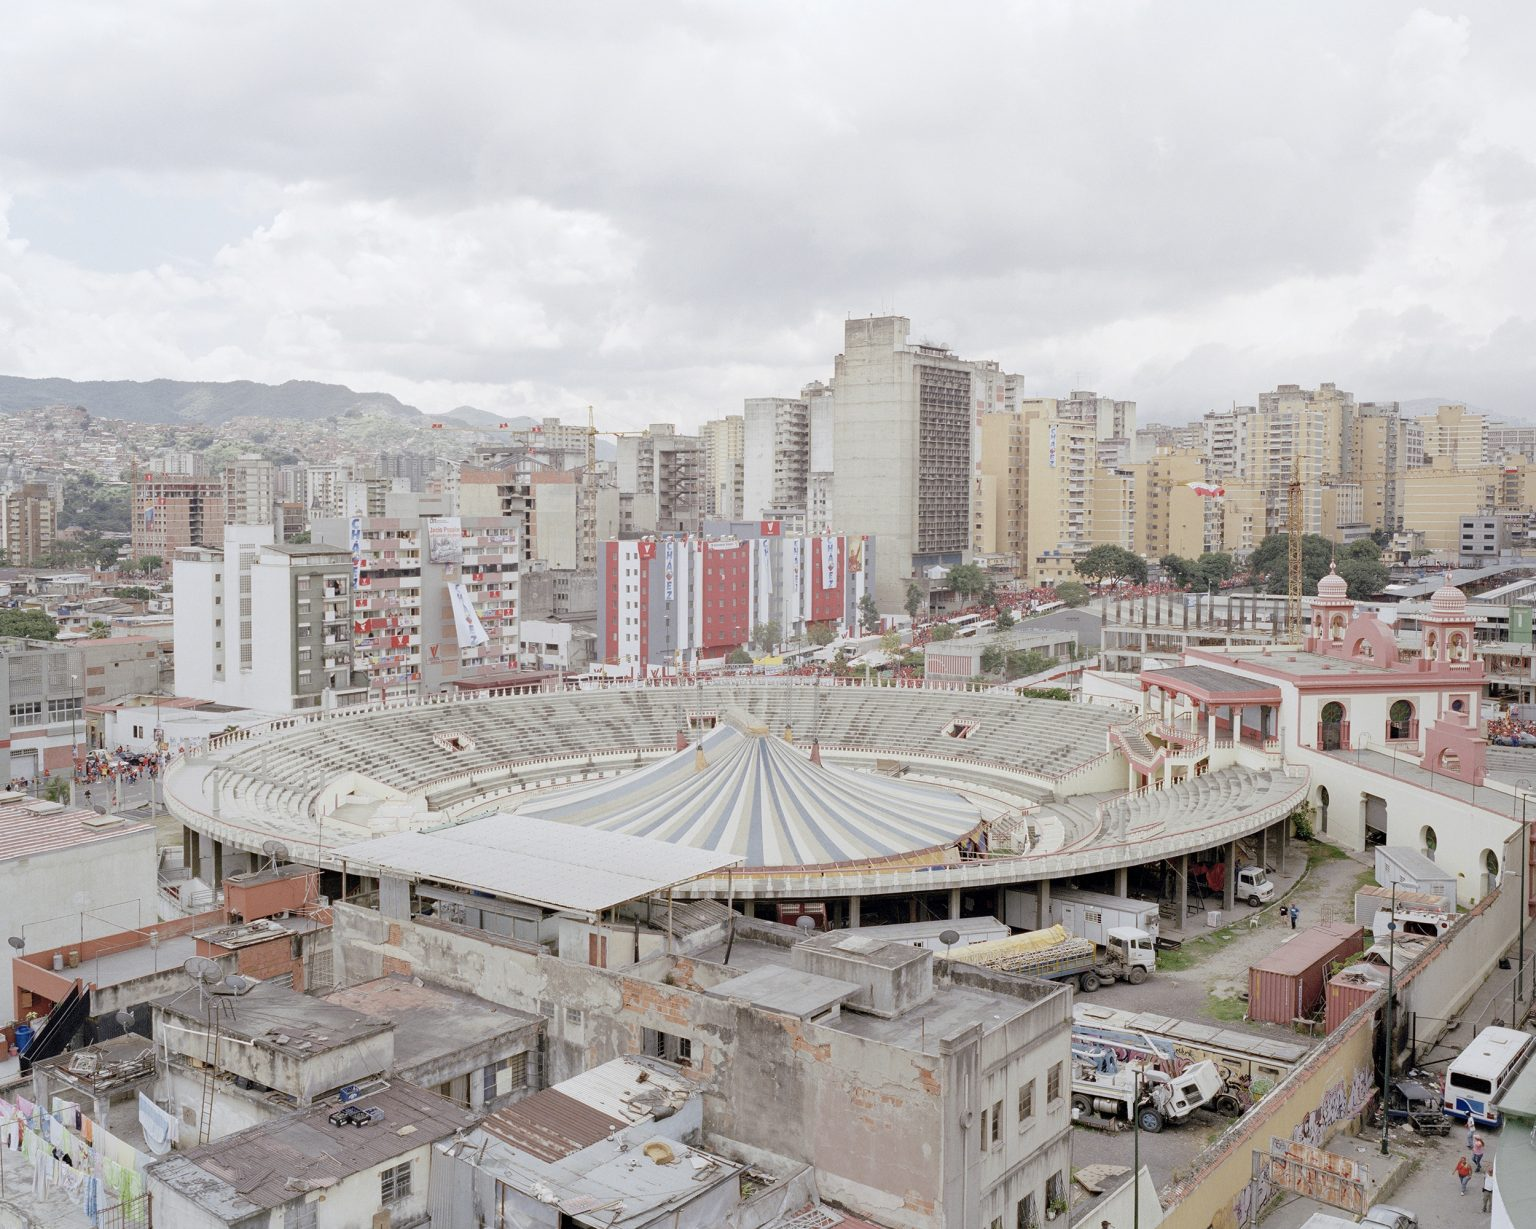 Nuevo Circo, a school of circus and street cultures biuld in the old bullfight arena.